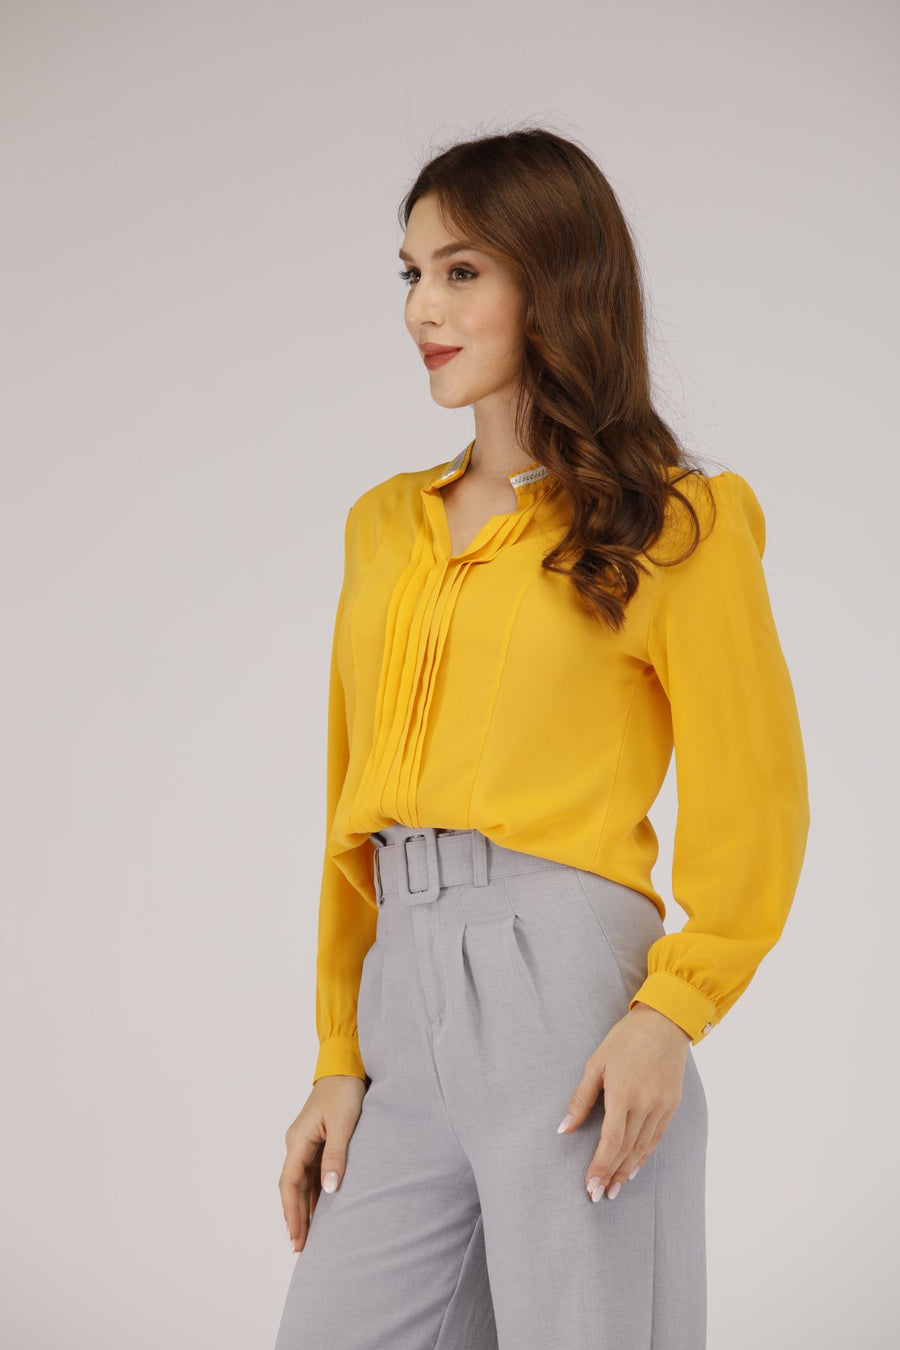 Mantra Pakistan Straight Collar Shirt with Pleats | TOPS